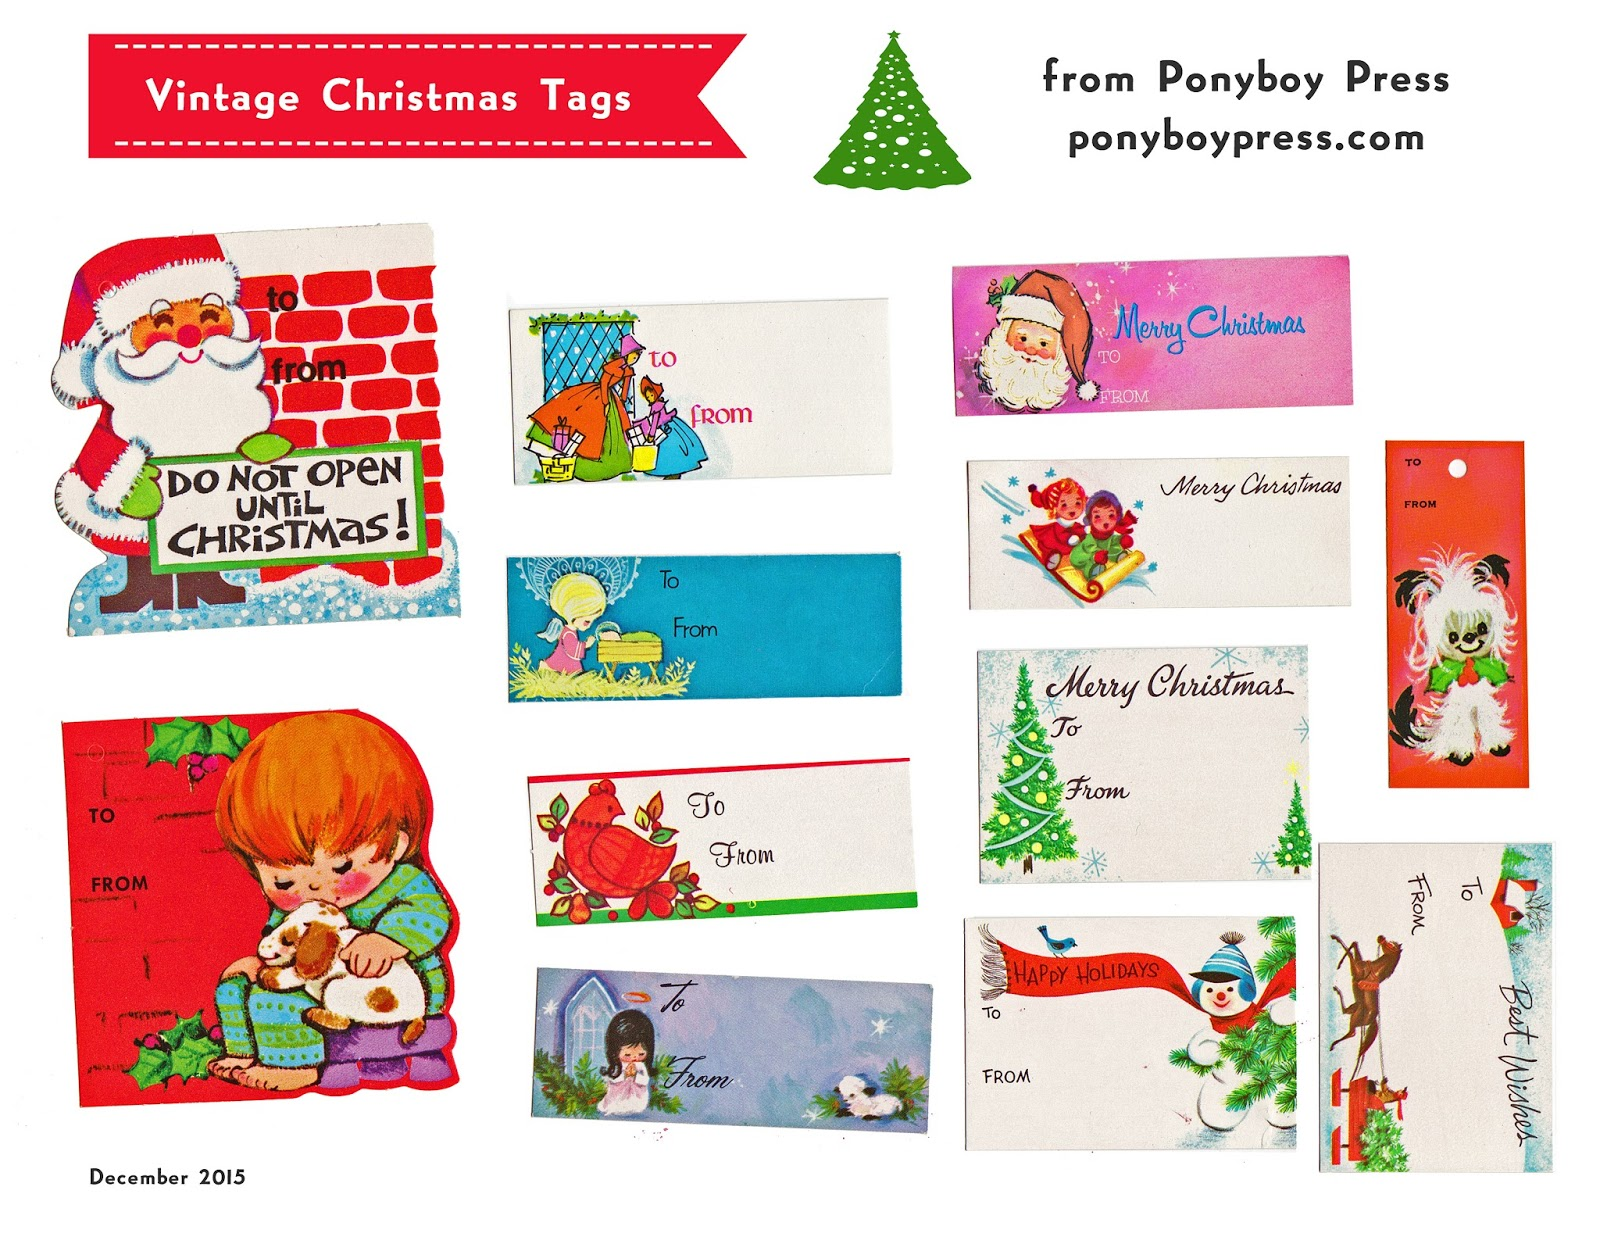 Ponyboy press zine maker design lover dedicated homebody vintage christmas tags free printable from the cedar chest and ponyboy press negle Image collections